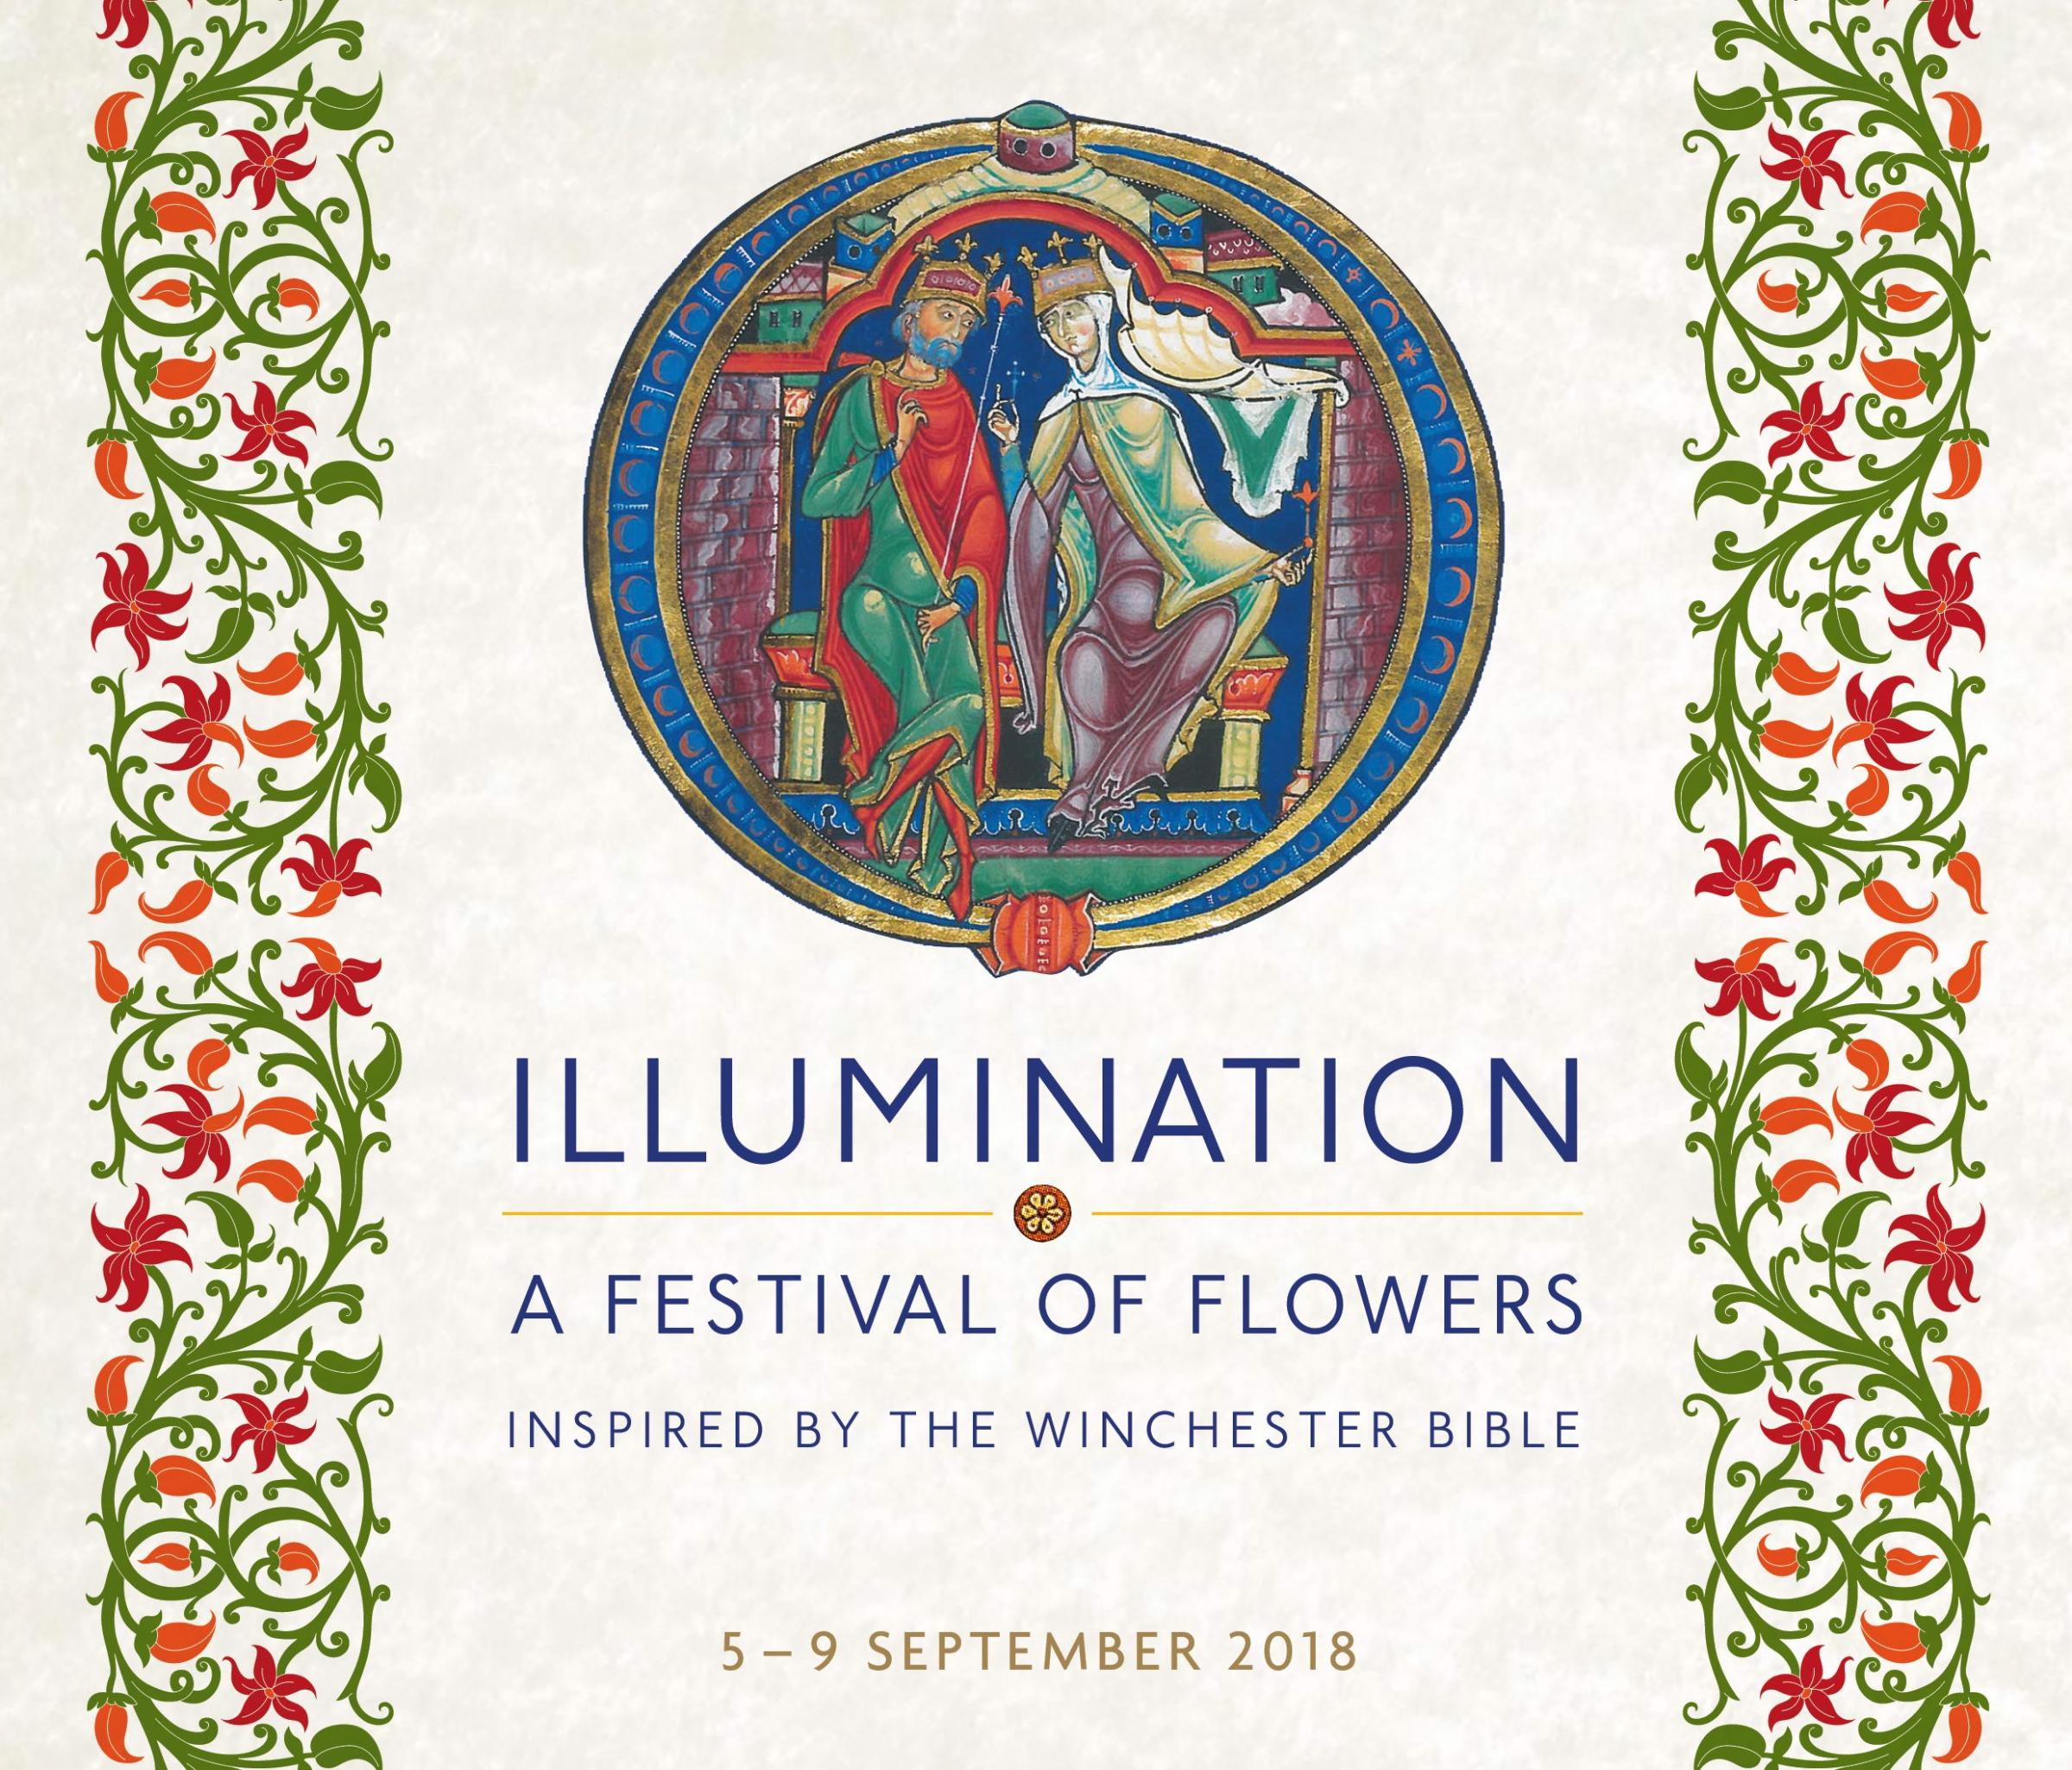 Illumination: A Festival of Flowers